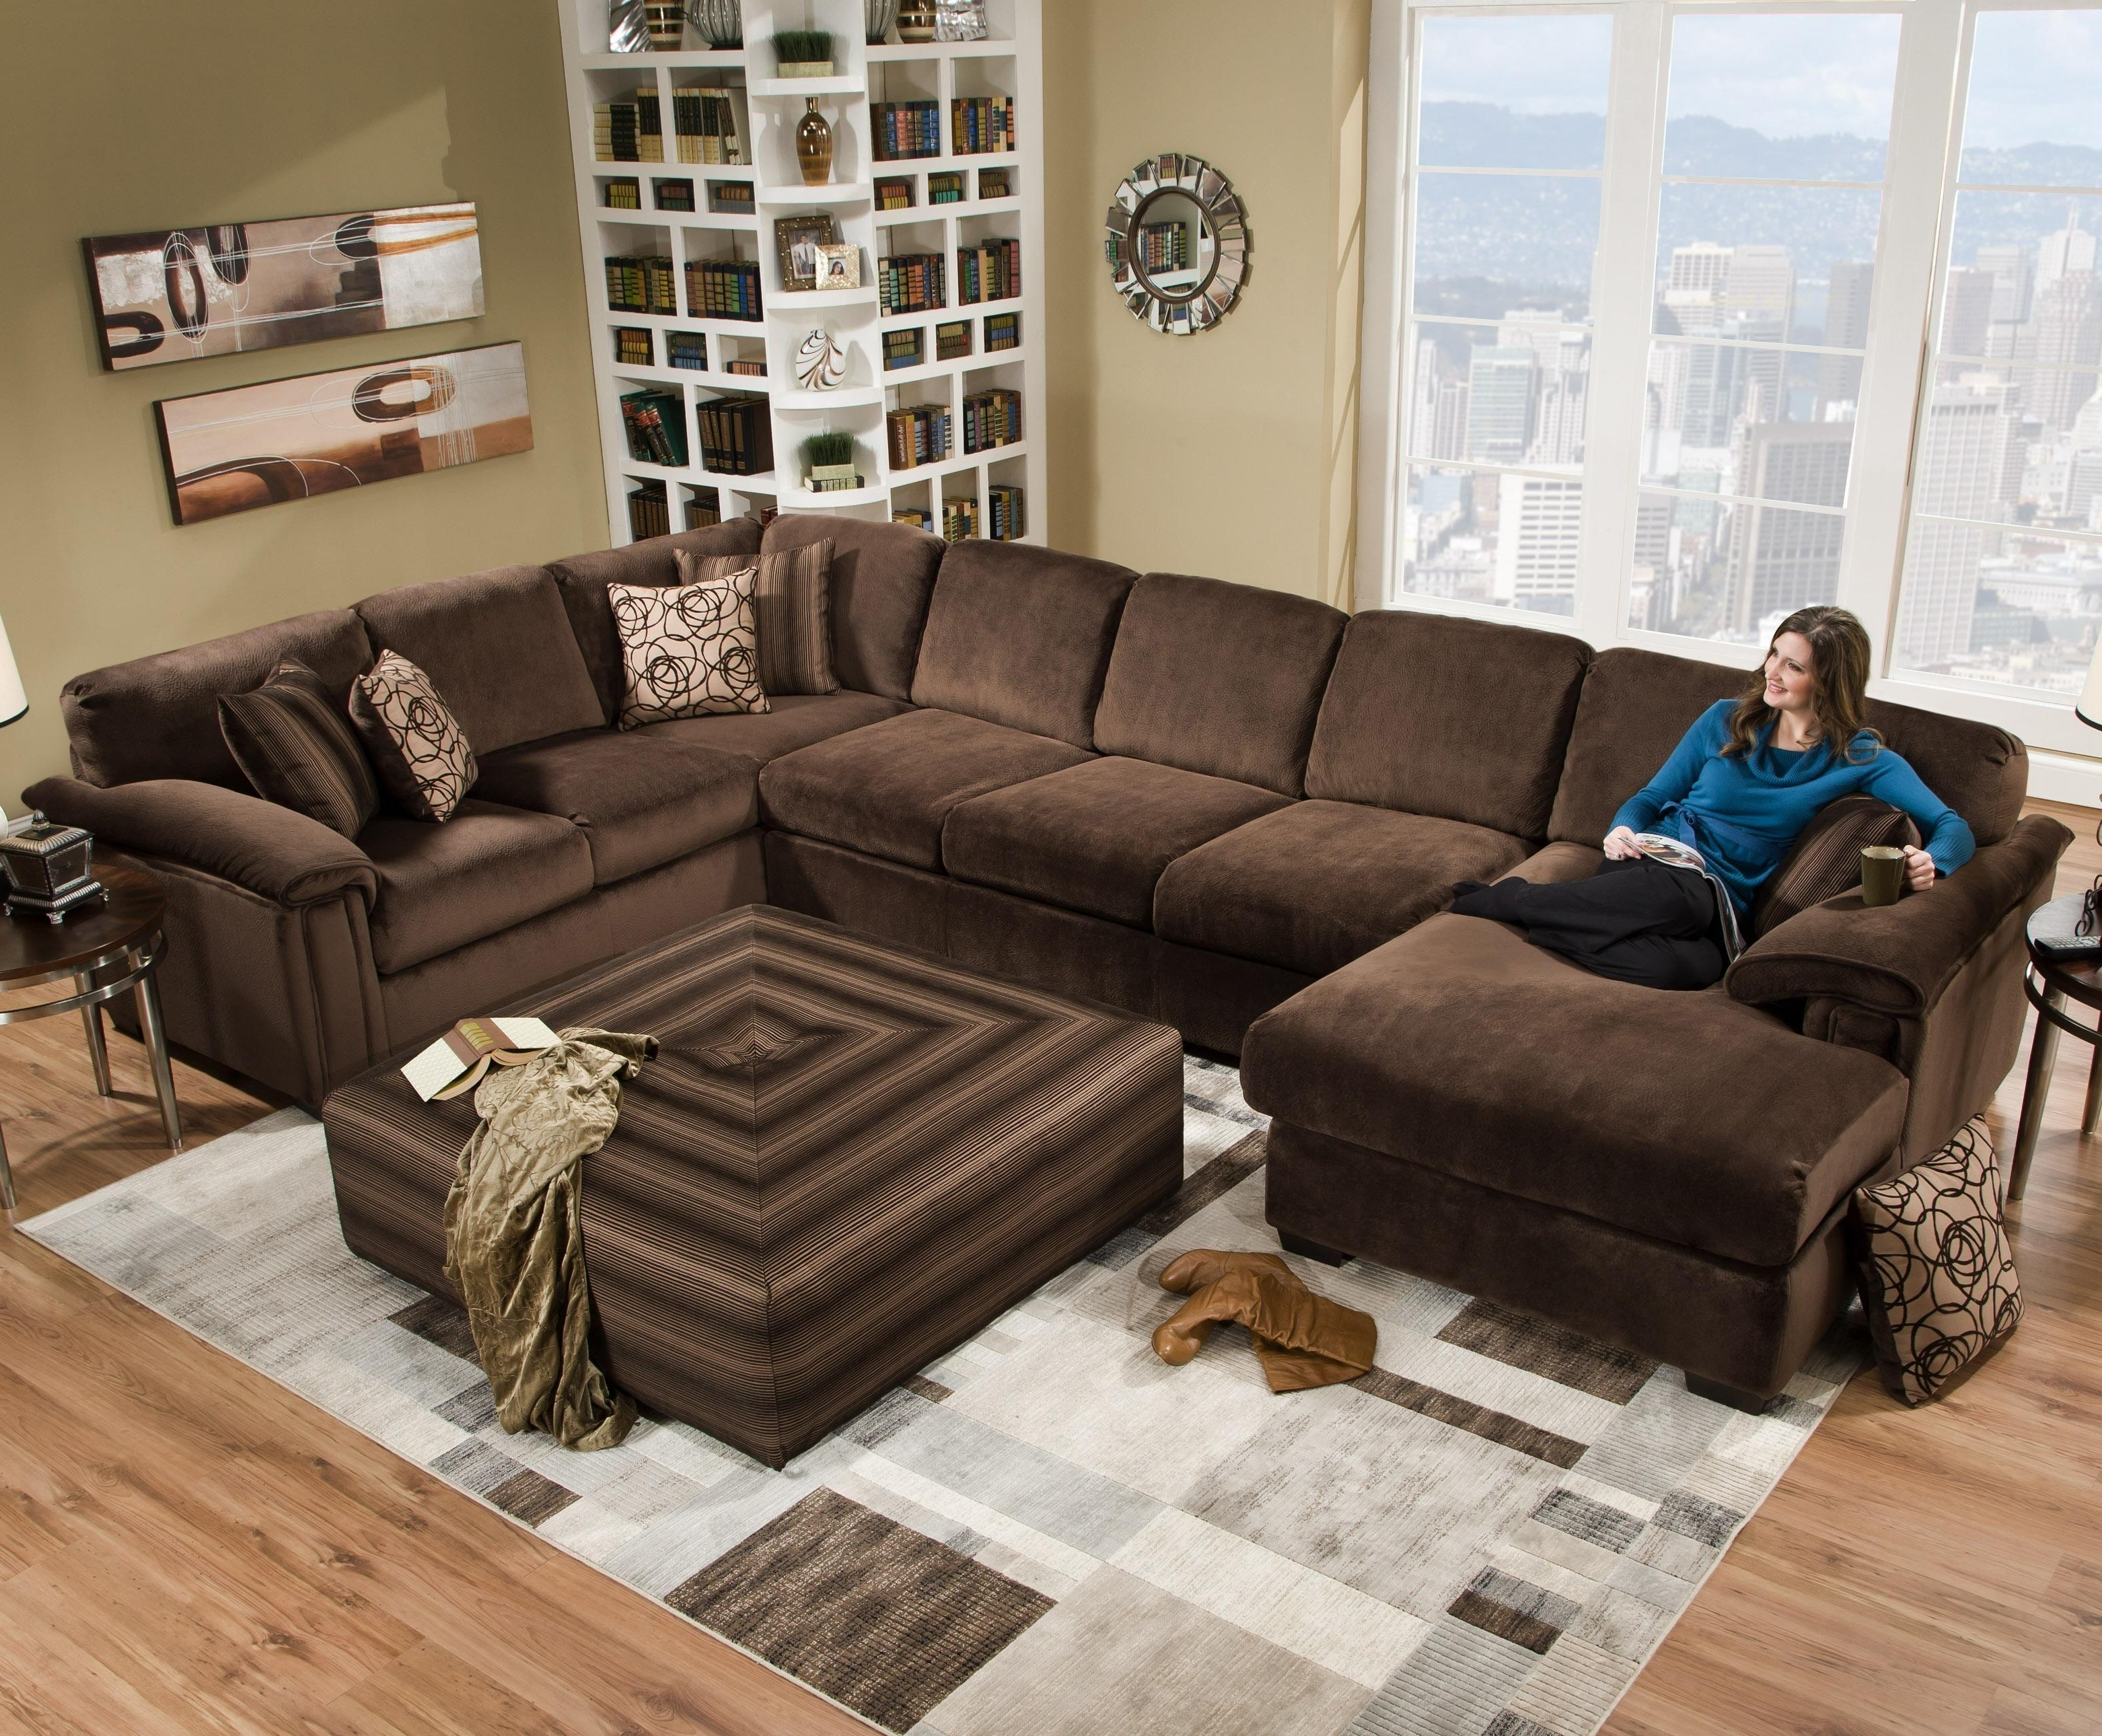 Nebraska Furniture Mart Sectional Sofas In Fashionable Furniture : Nebraska Furniture Mart Couches Lovely Six Person (View 14 of 15)